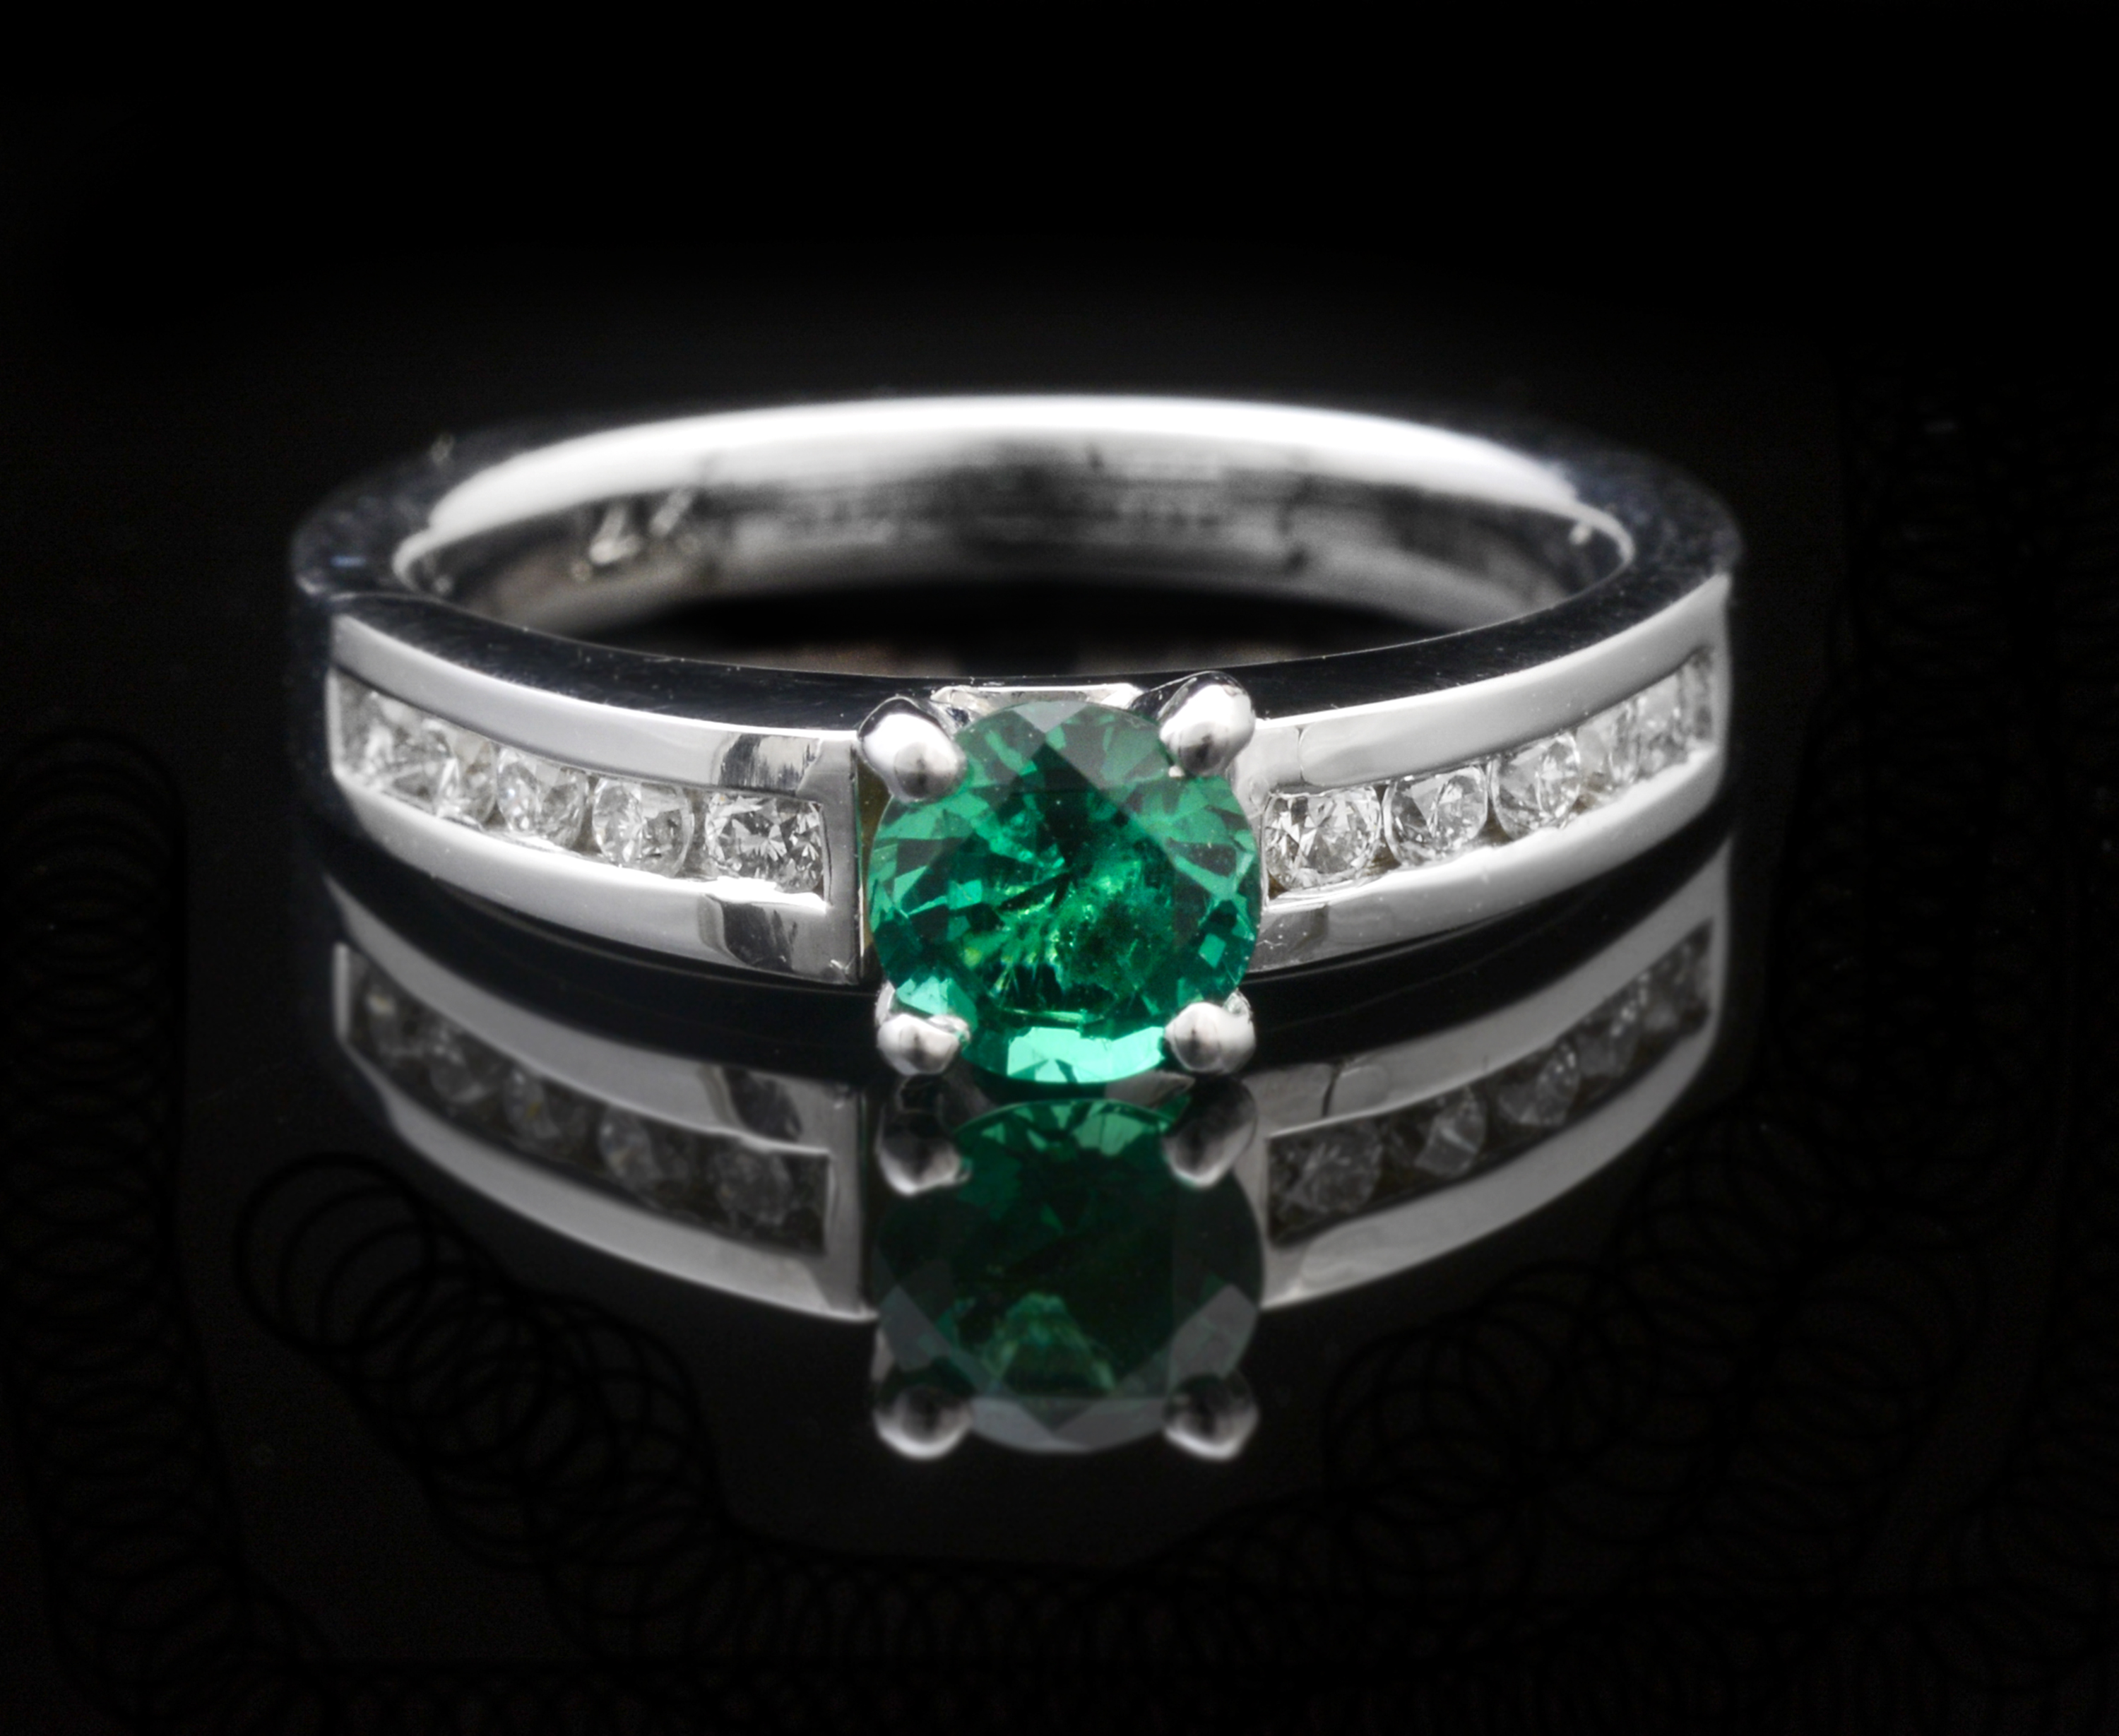 jewelry rings emeralds green emerald google pin search emeral pinterest